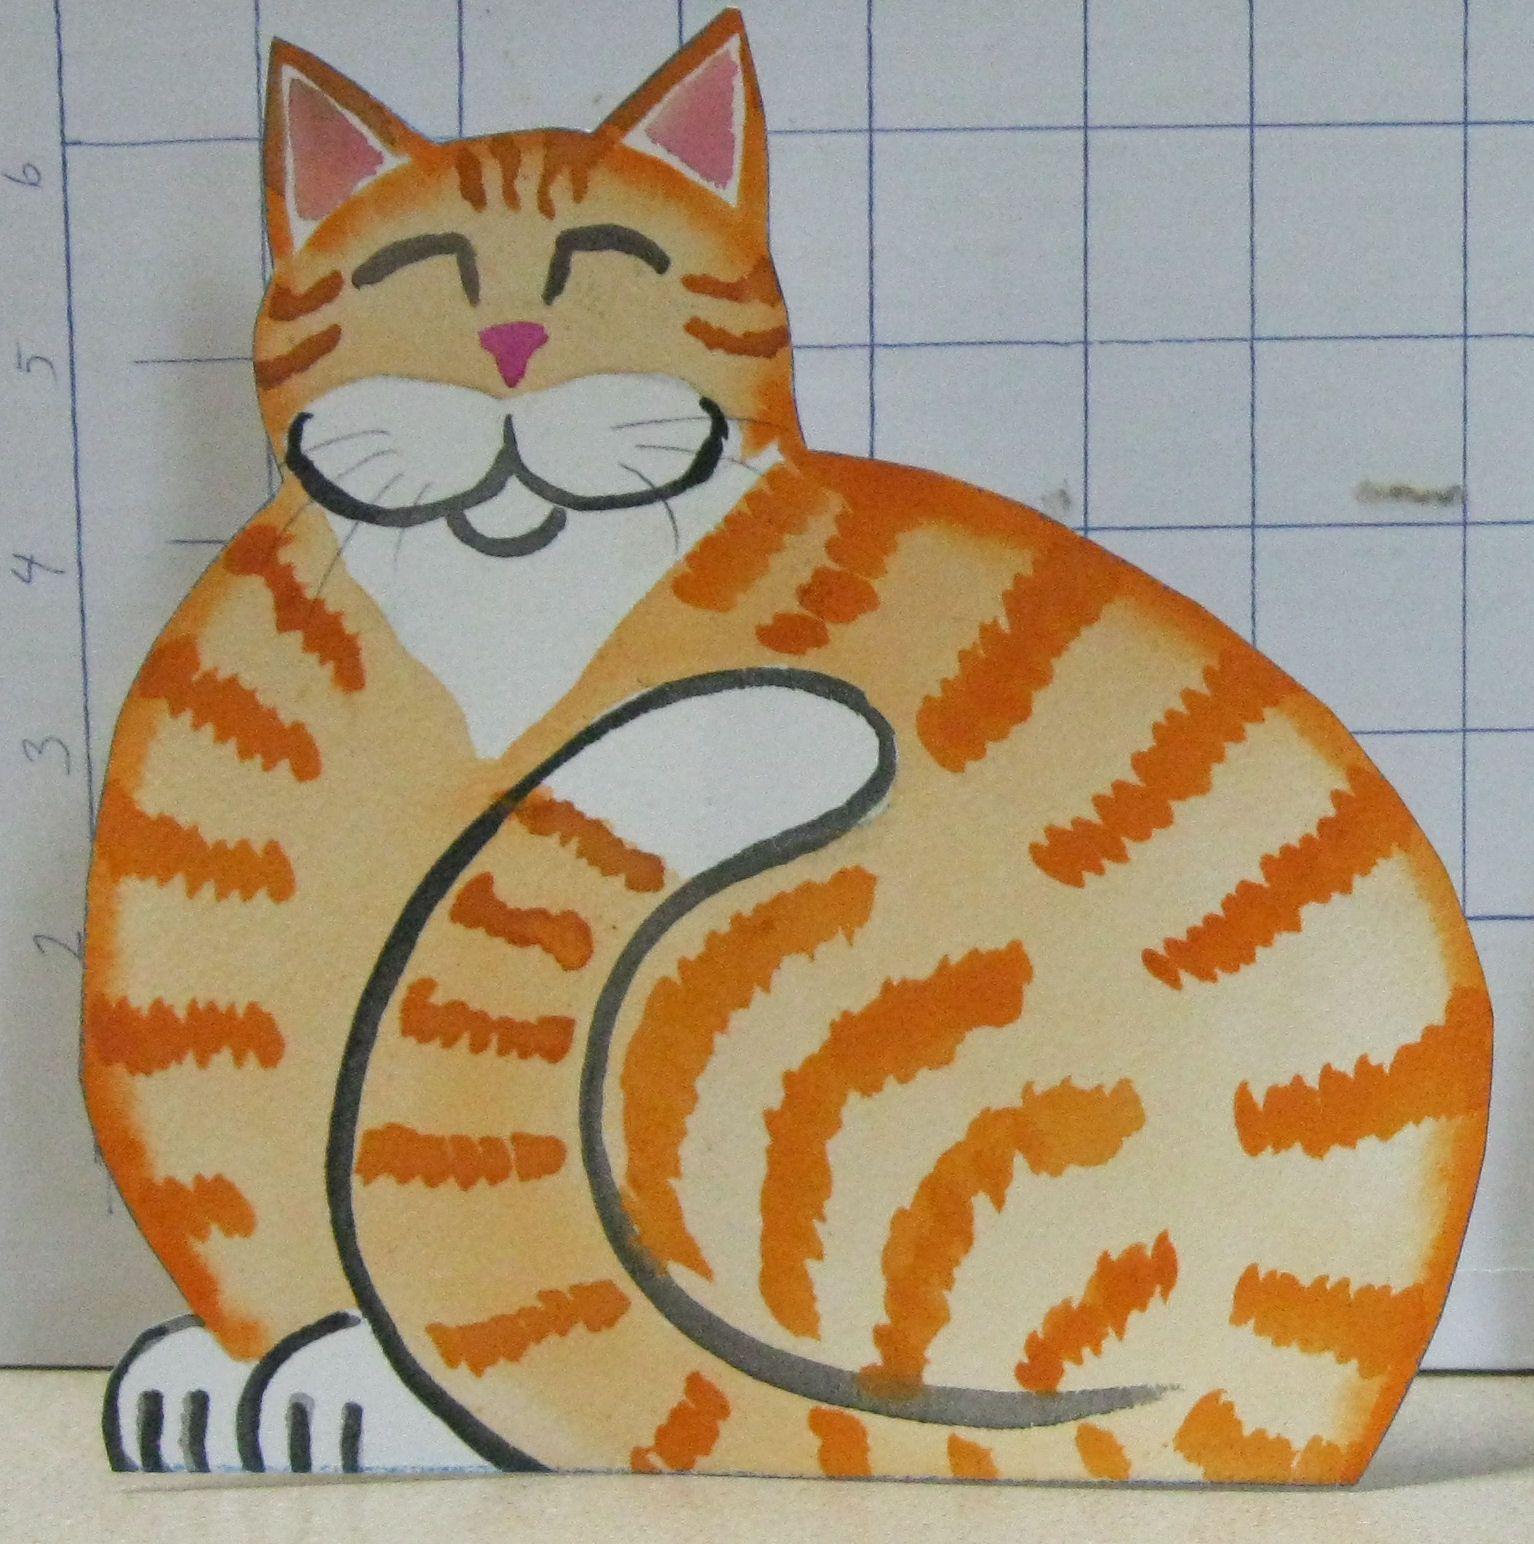 """""""Happy Orange Kitty""""  7"""" tall x 7"""" wide $9.99 ppd. to lower 48. Paypal"""